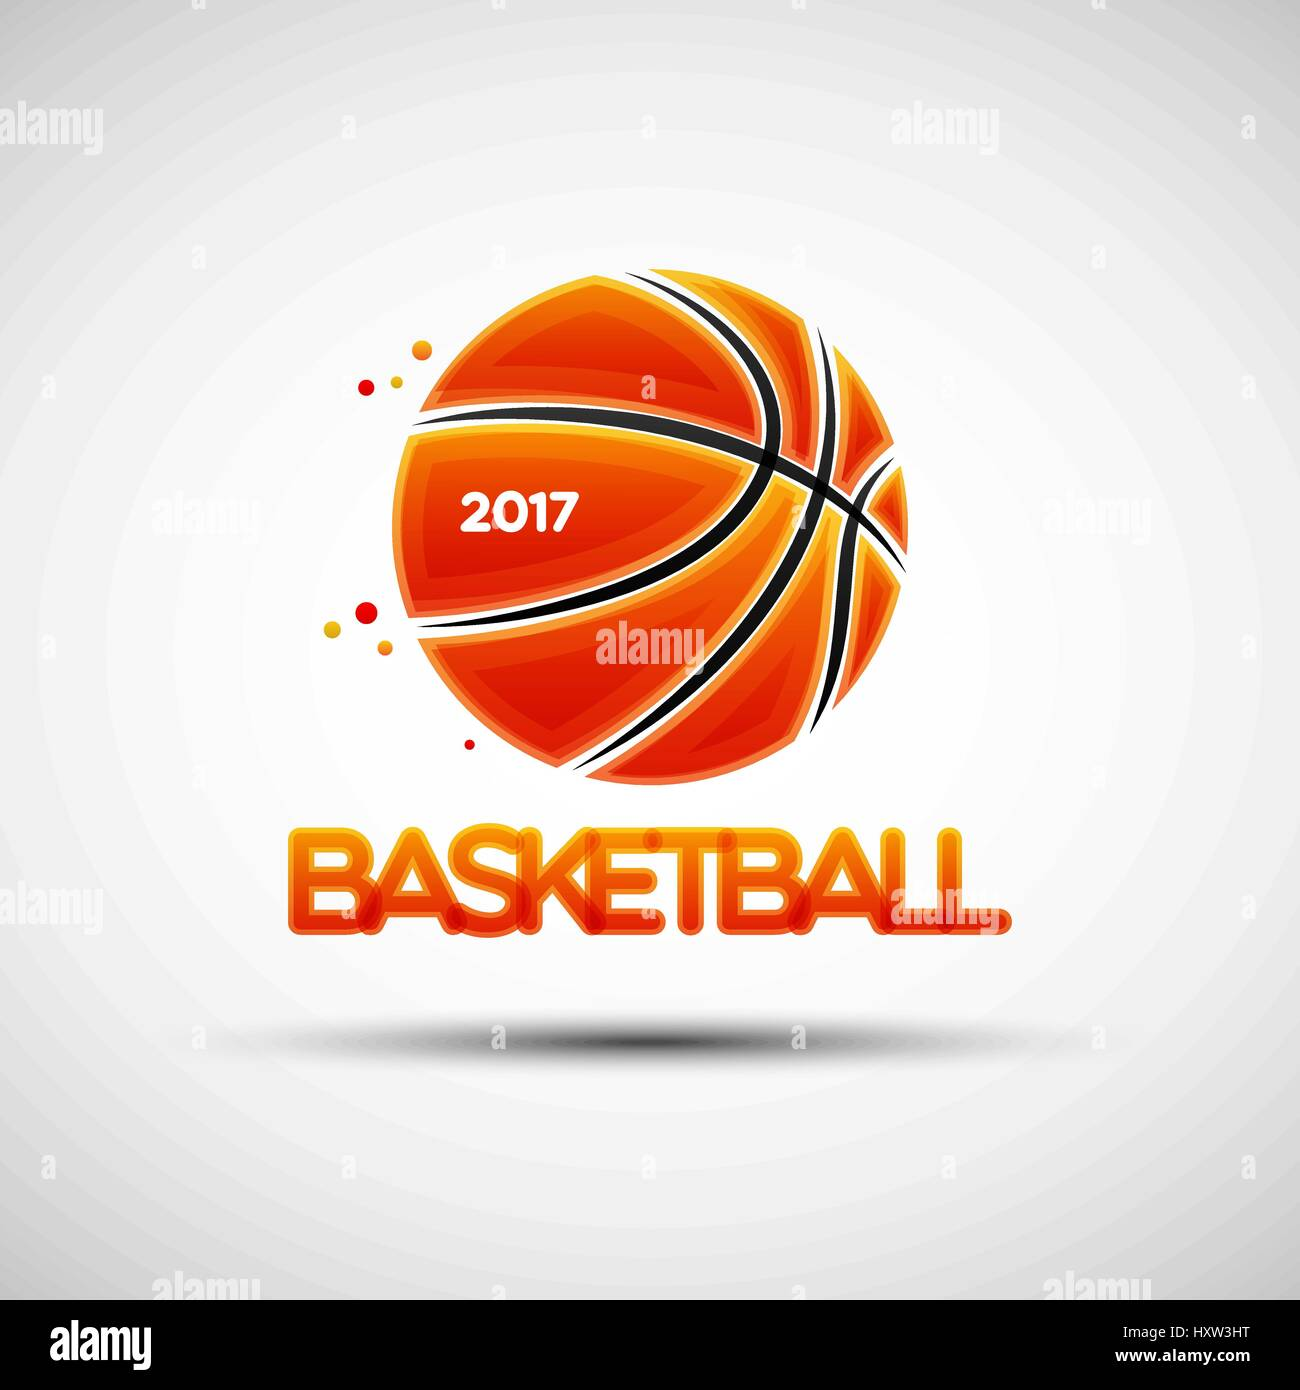 Basketball Streetball Stockfotos & Basketball Streetball Bilder - Alamy